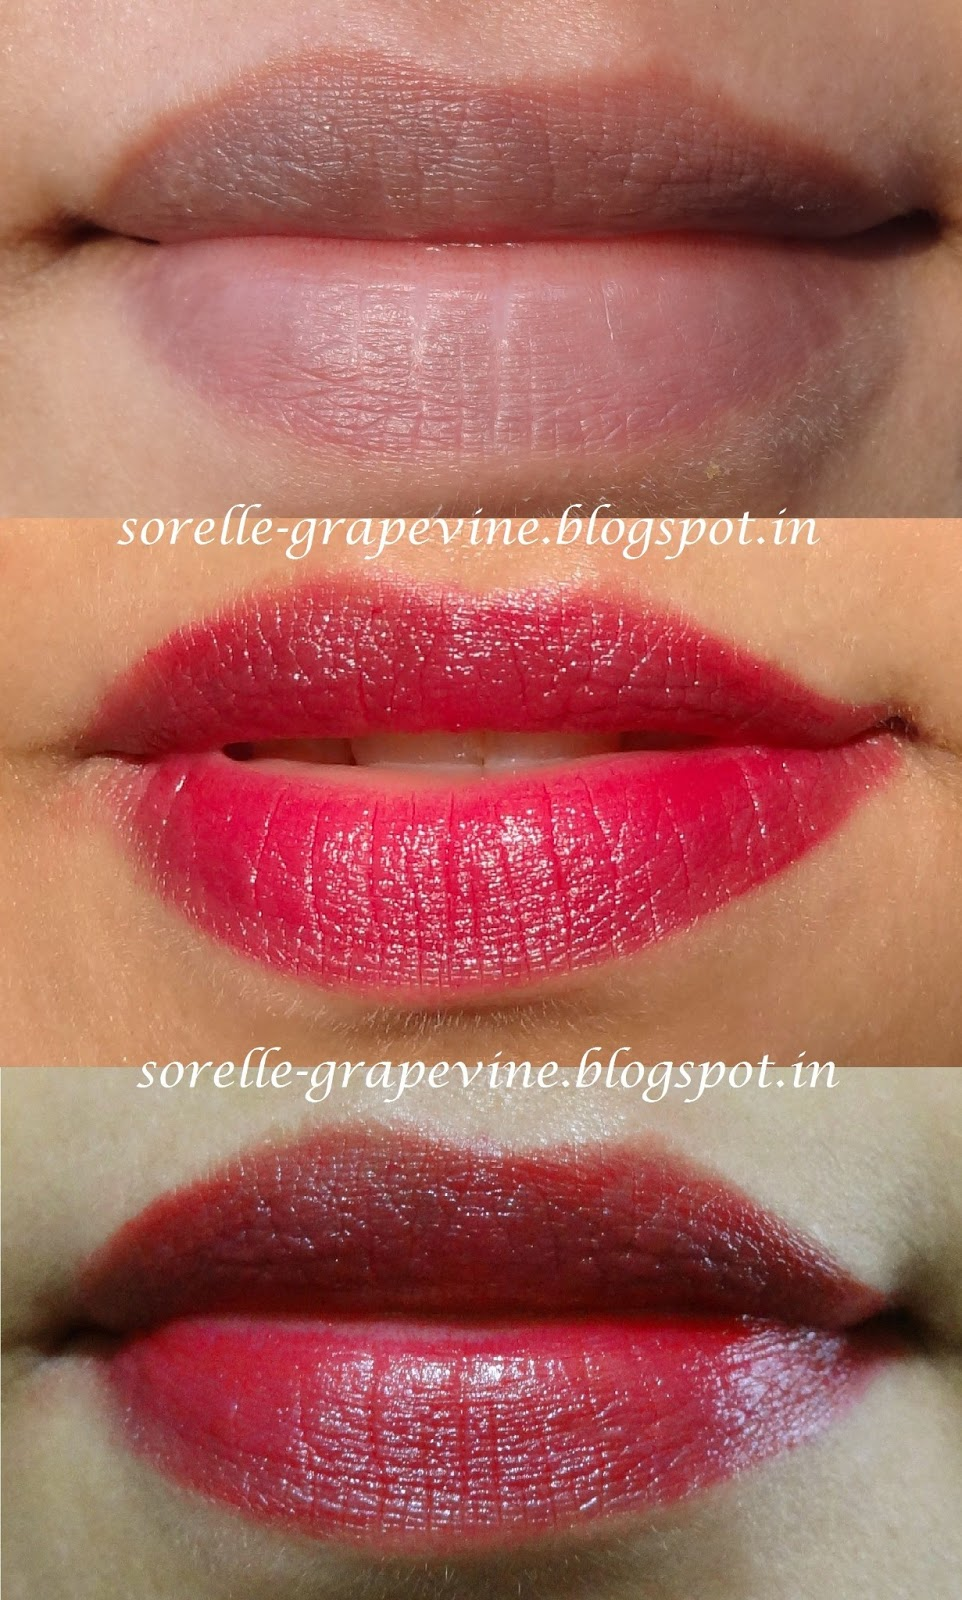 Sorelle GrapevineDior Rouge Lipstick Red Icon 757 - Swatch and Review